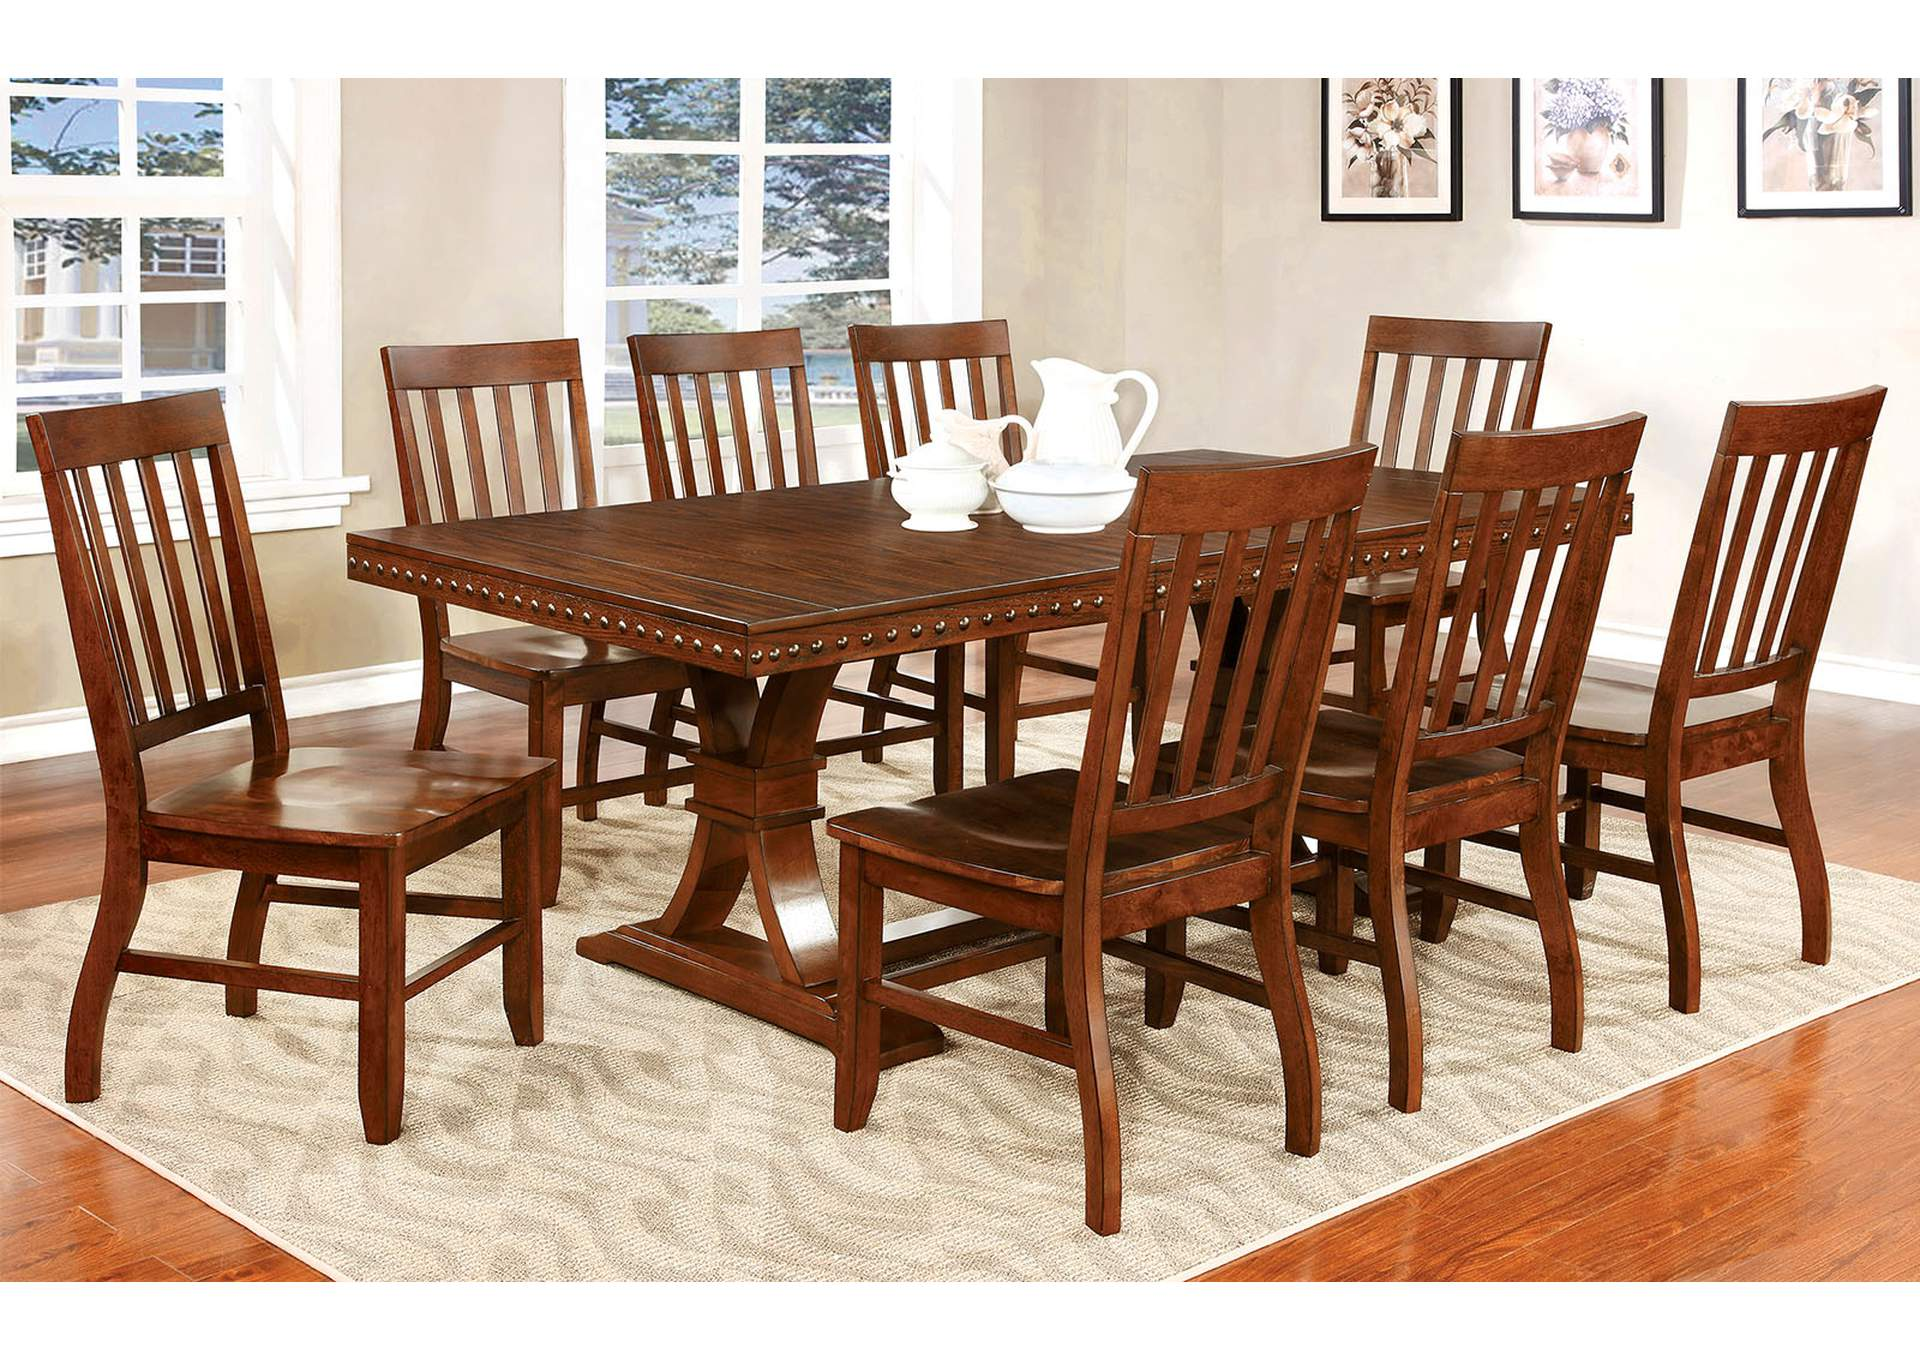 Foster I Dark Oak Extension Dining Table w/8 Side Chairs,Furniture of America